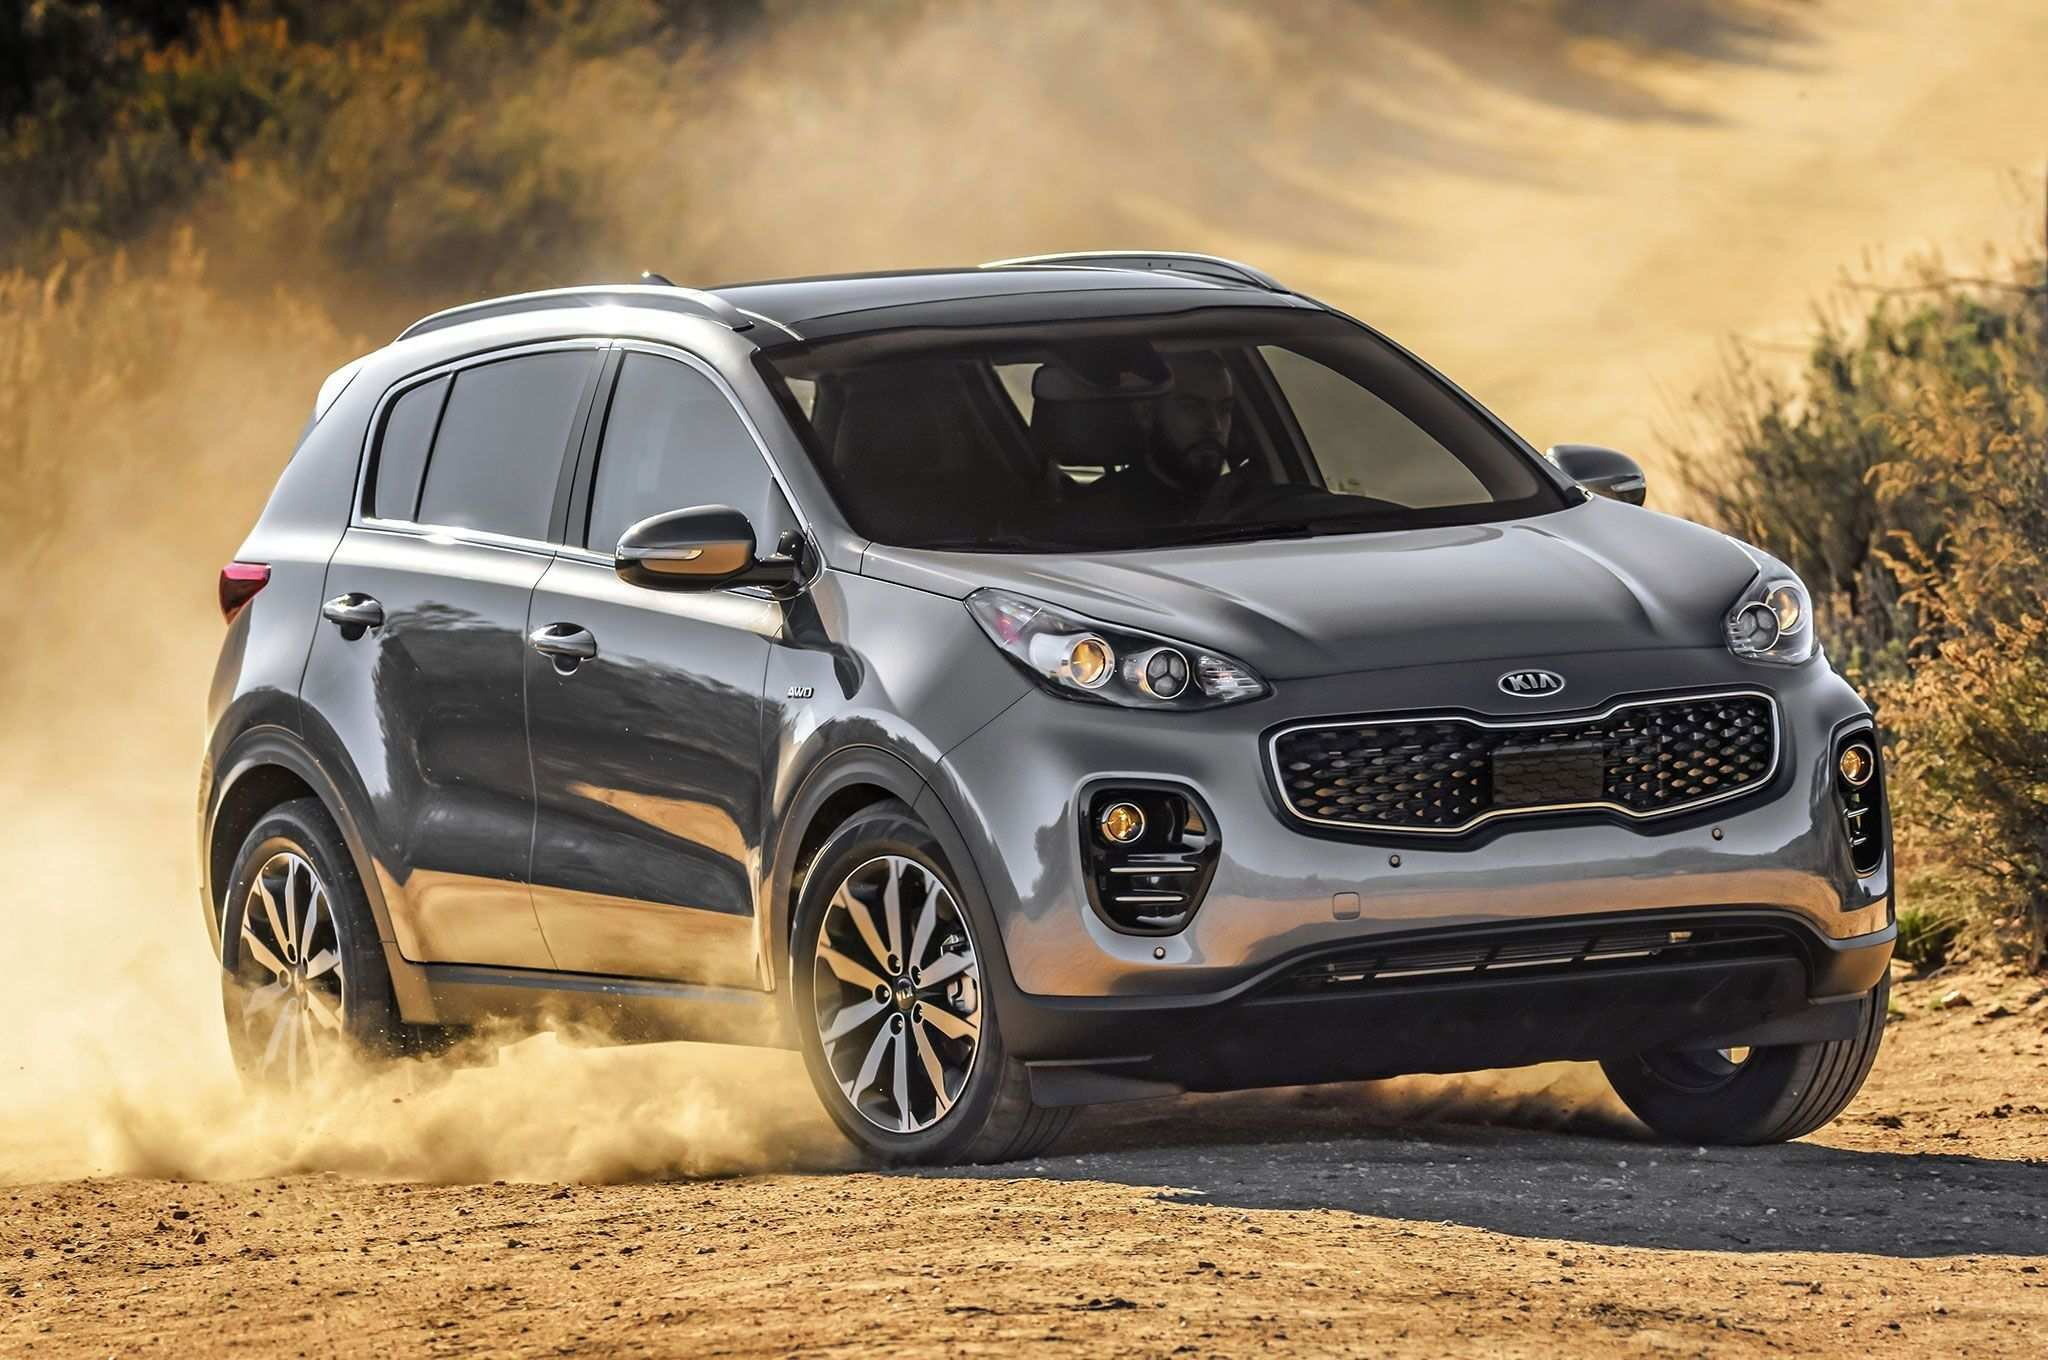 84 Best Review The Kia Sportage Gt Line 2019 Review And Specs New Concept by The Kia Sportage Gt Line 2019 Review And Specs